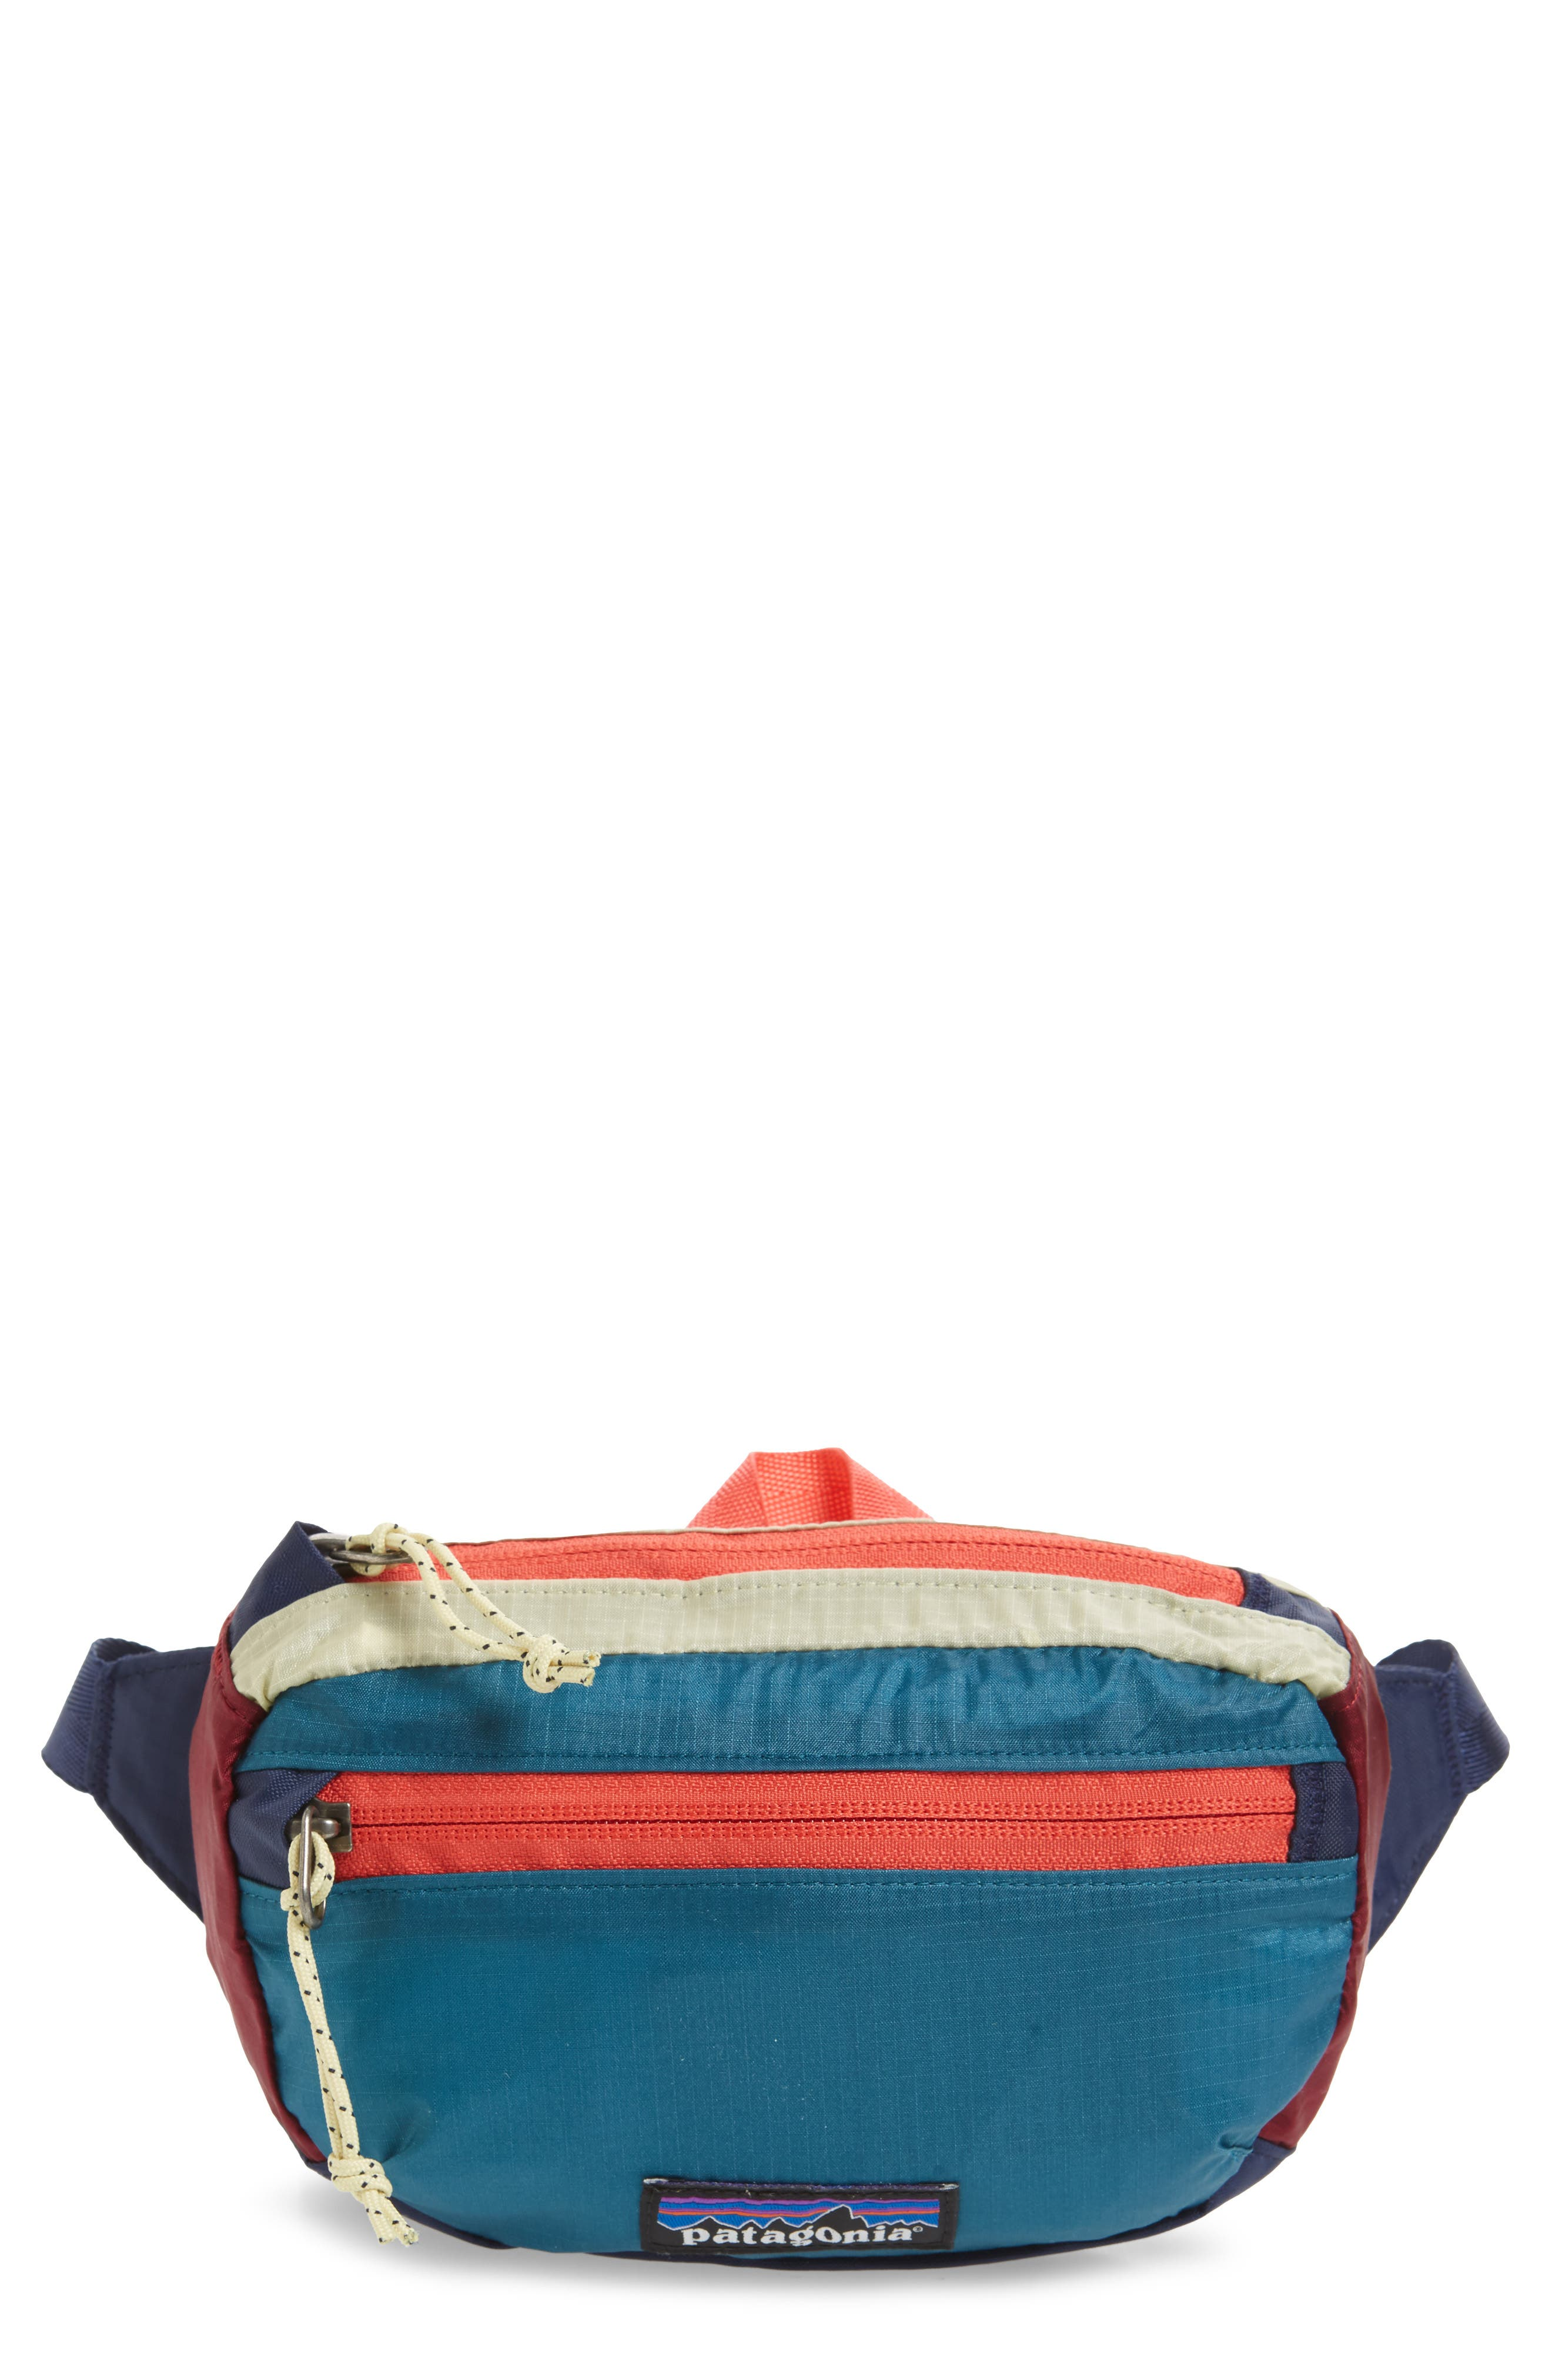 PATAGONIA, Travel Belt Bag, Main thumbnail 1, color, PATCHWORK ARROW RED / NAVY